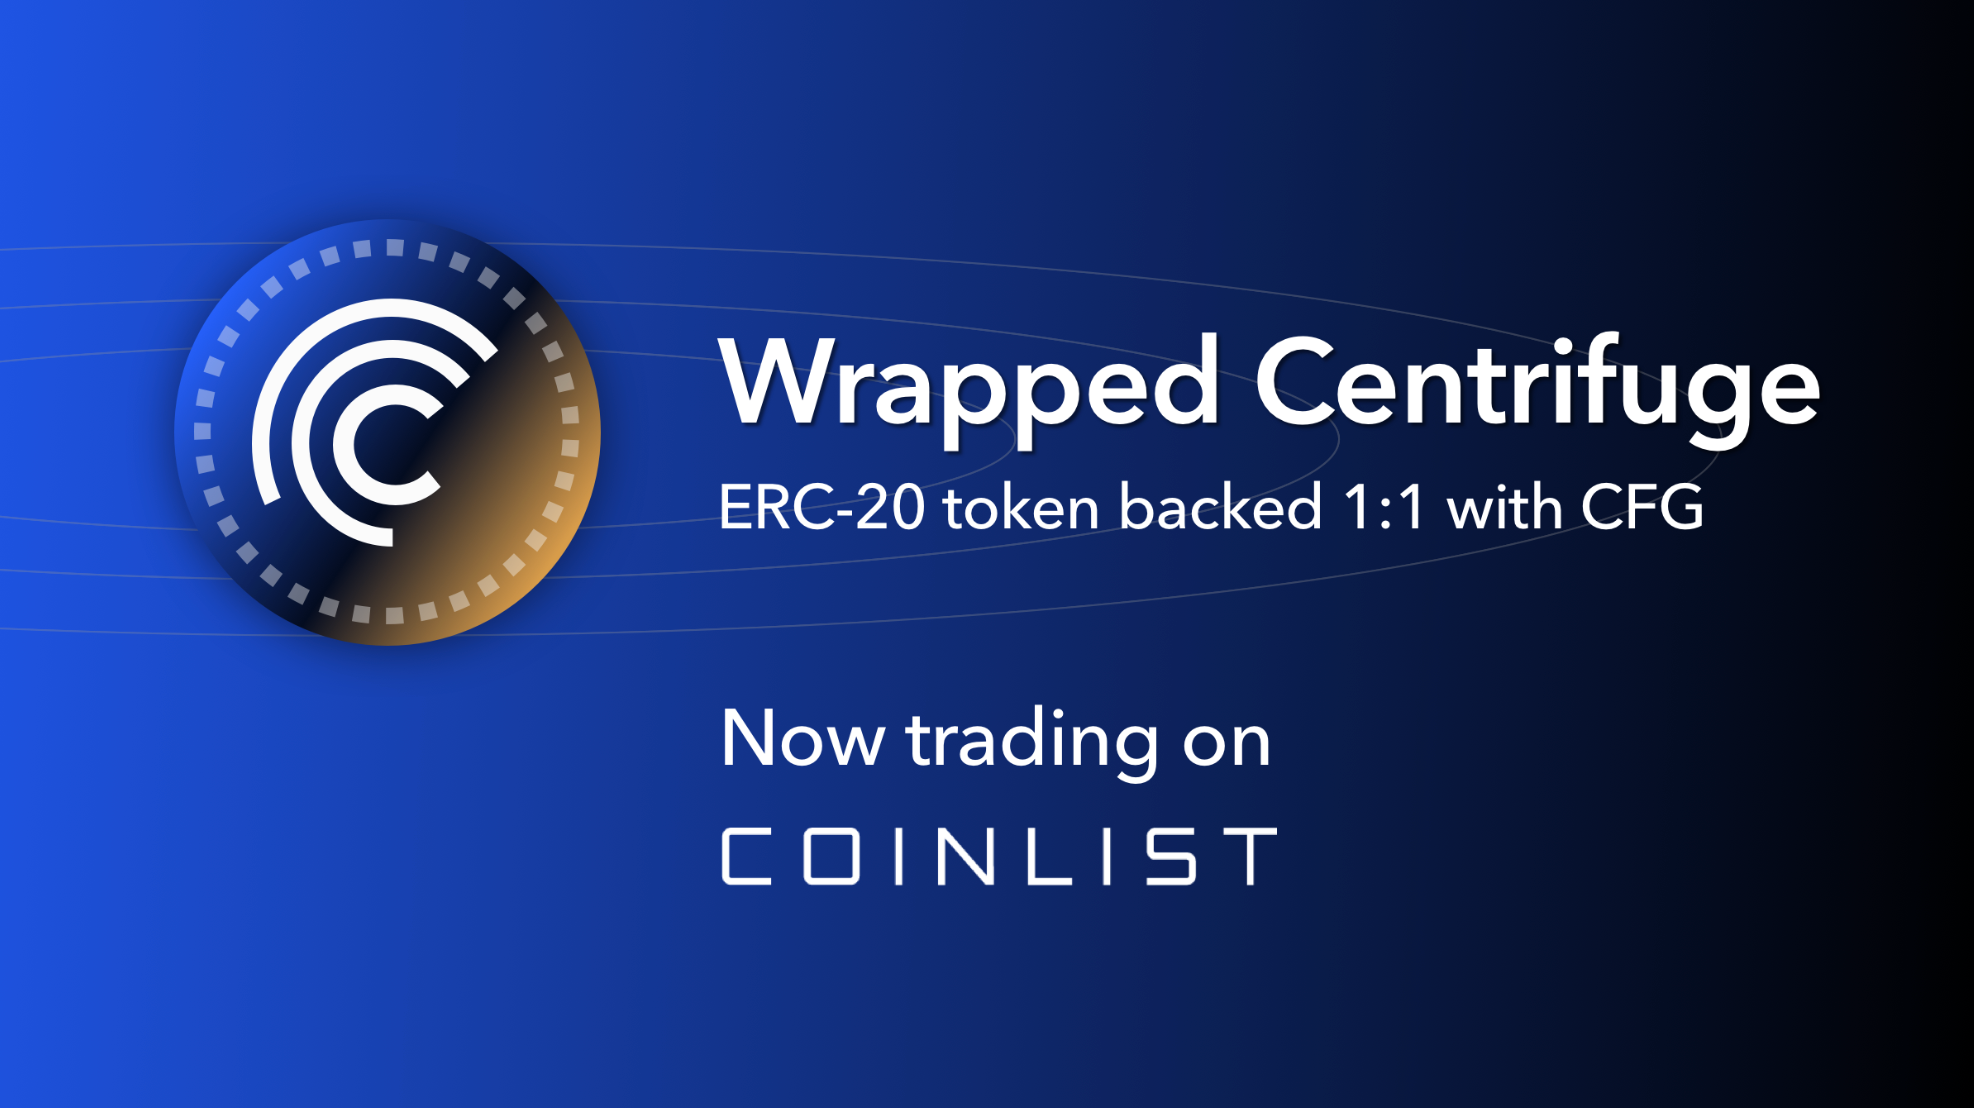 [Coinlist] Trade Wrapped Centrifuge (wCFG) on CoinList - AZCoin News